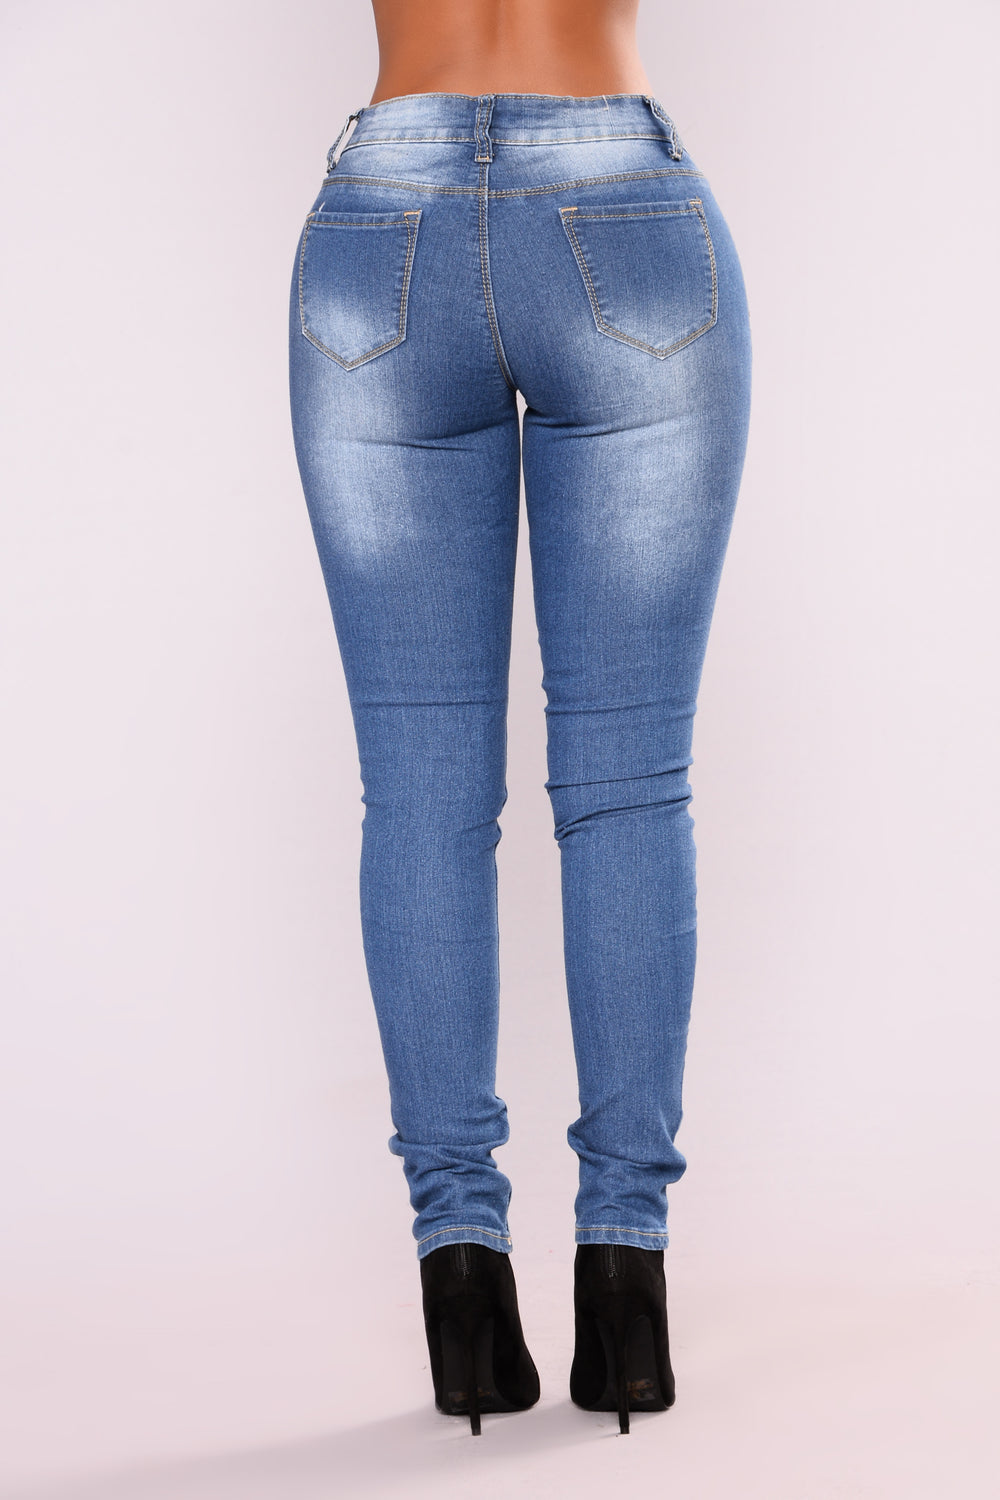 Candy Rain Skinny Jeans - Medium Blue Wash